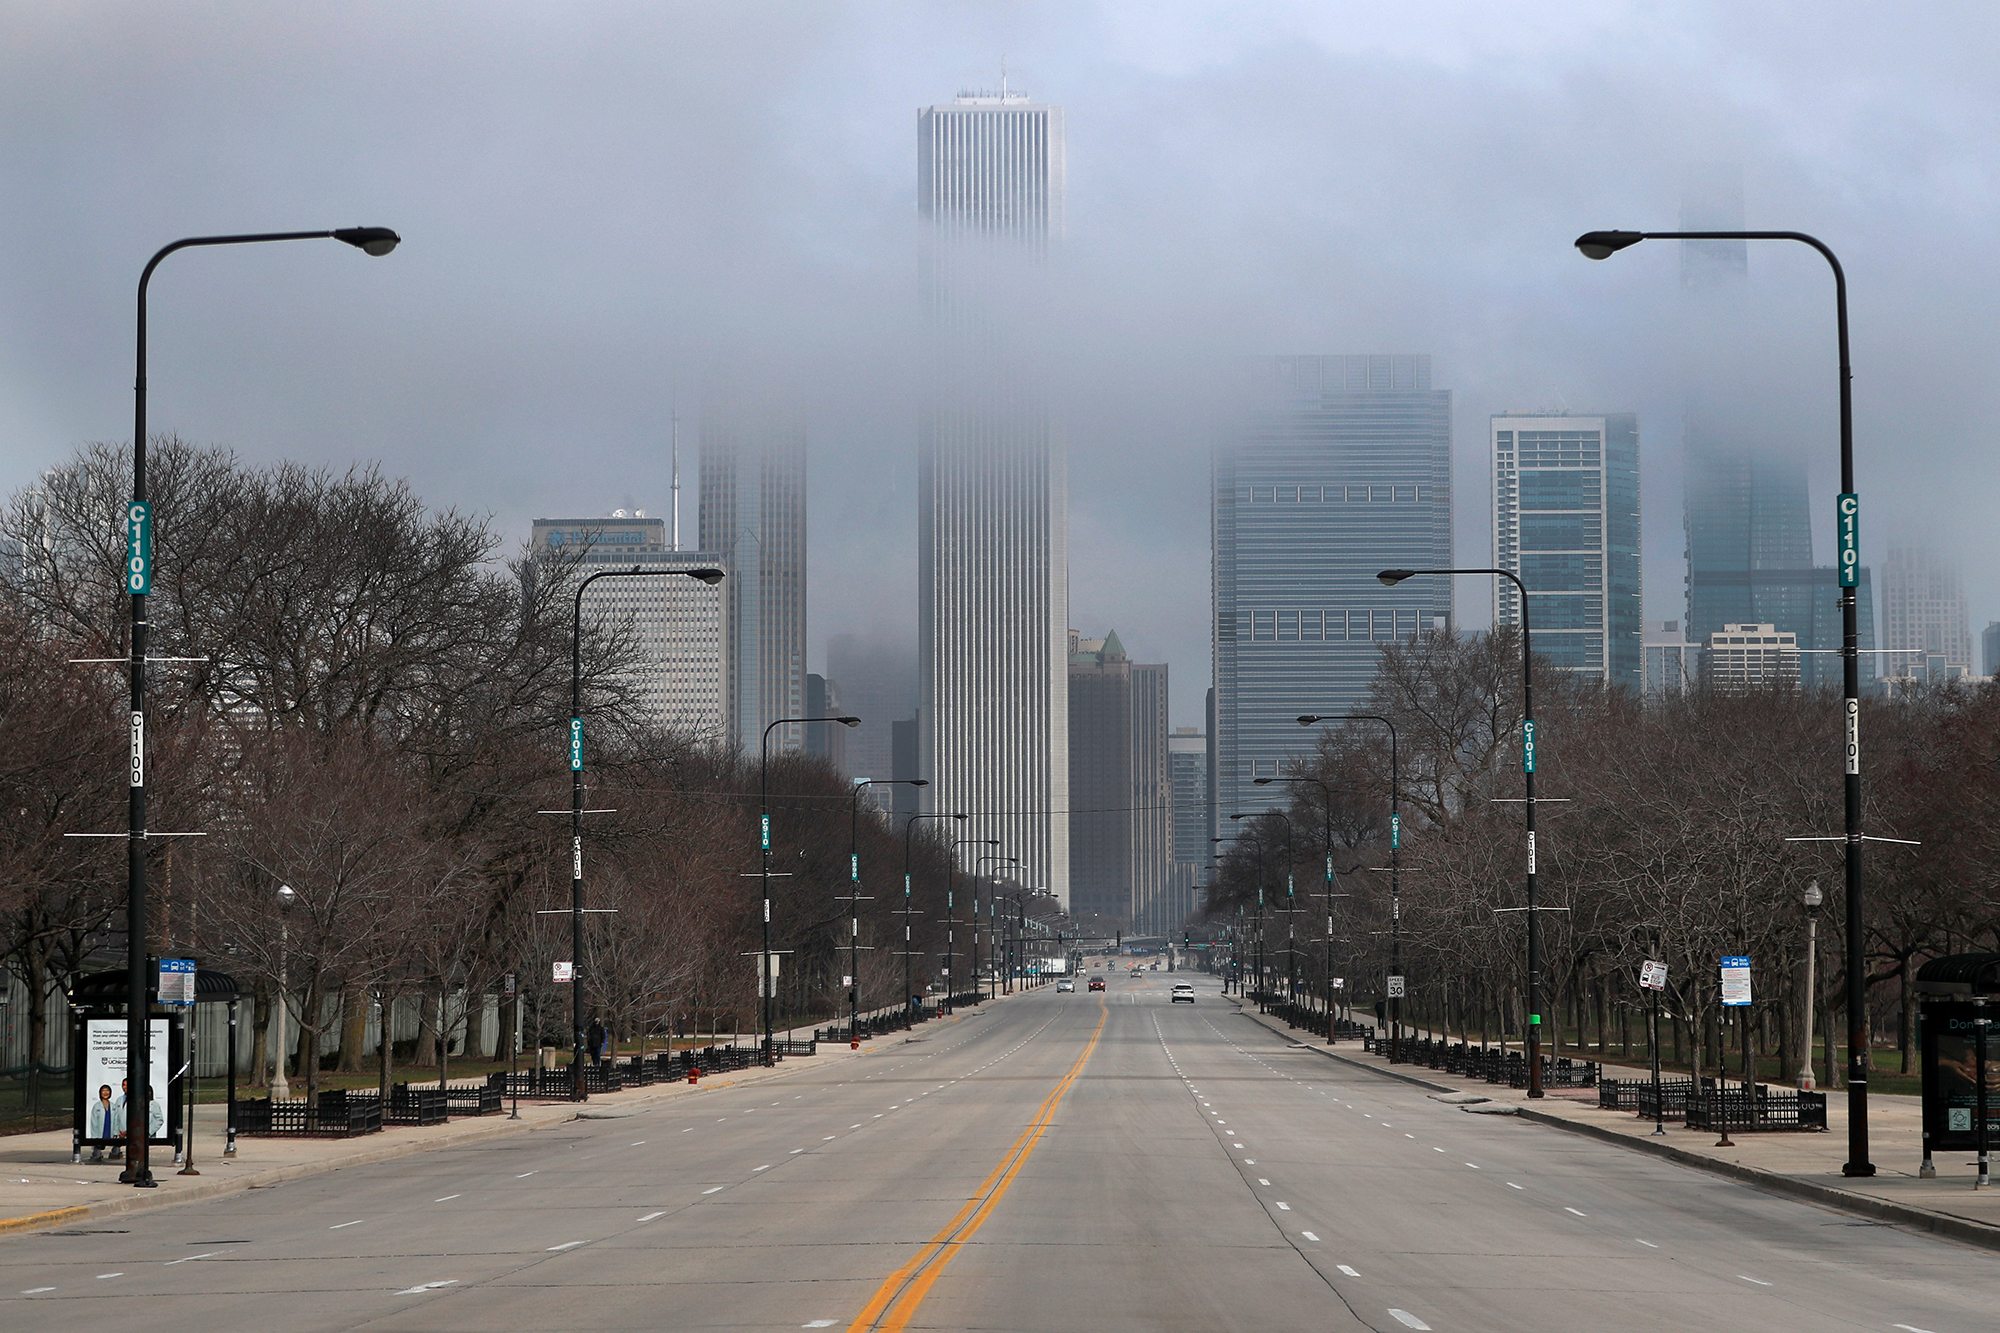 Fog lifts over Chicago and the usually busy Columbus Drive, Tuesday, March 24, on the second work day since Illinois Gov. J.B. Pritzker gave a shelter in place order last week due to the coronavirus.